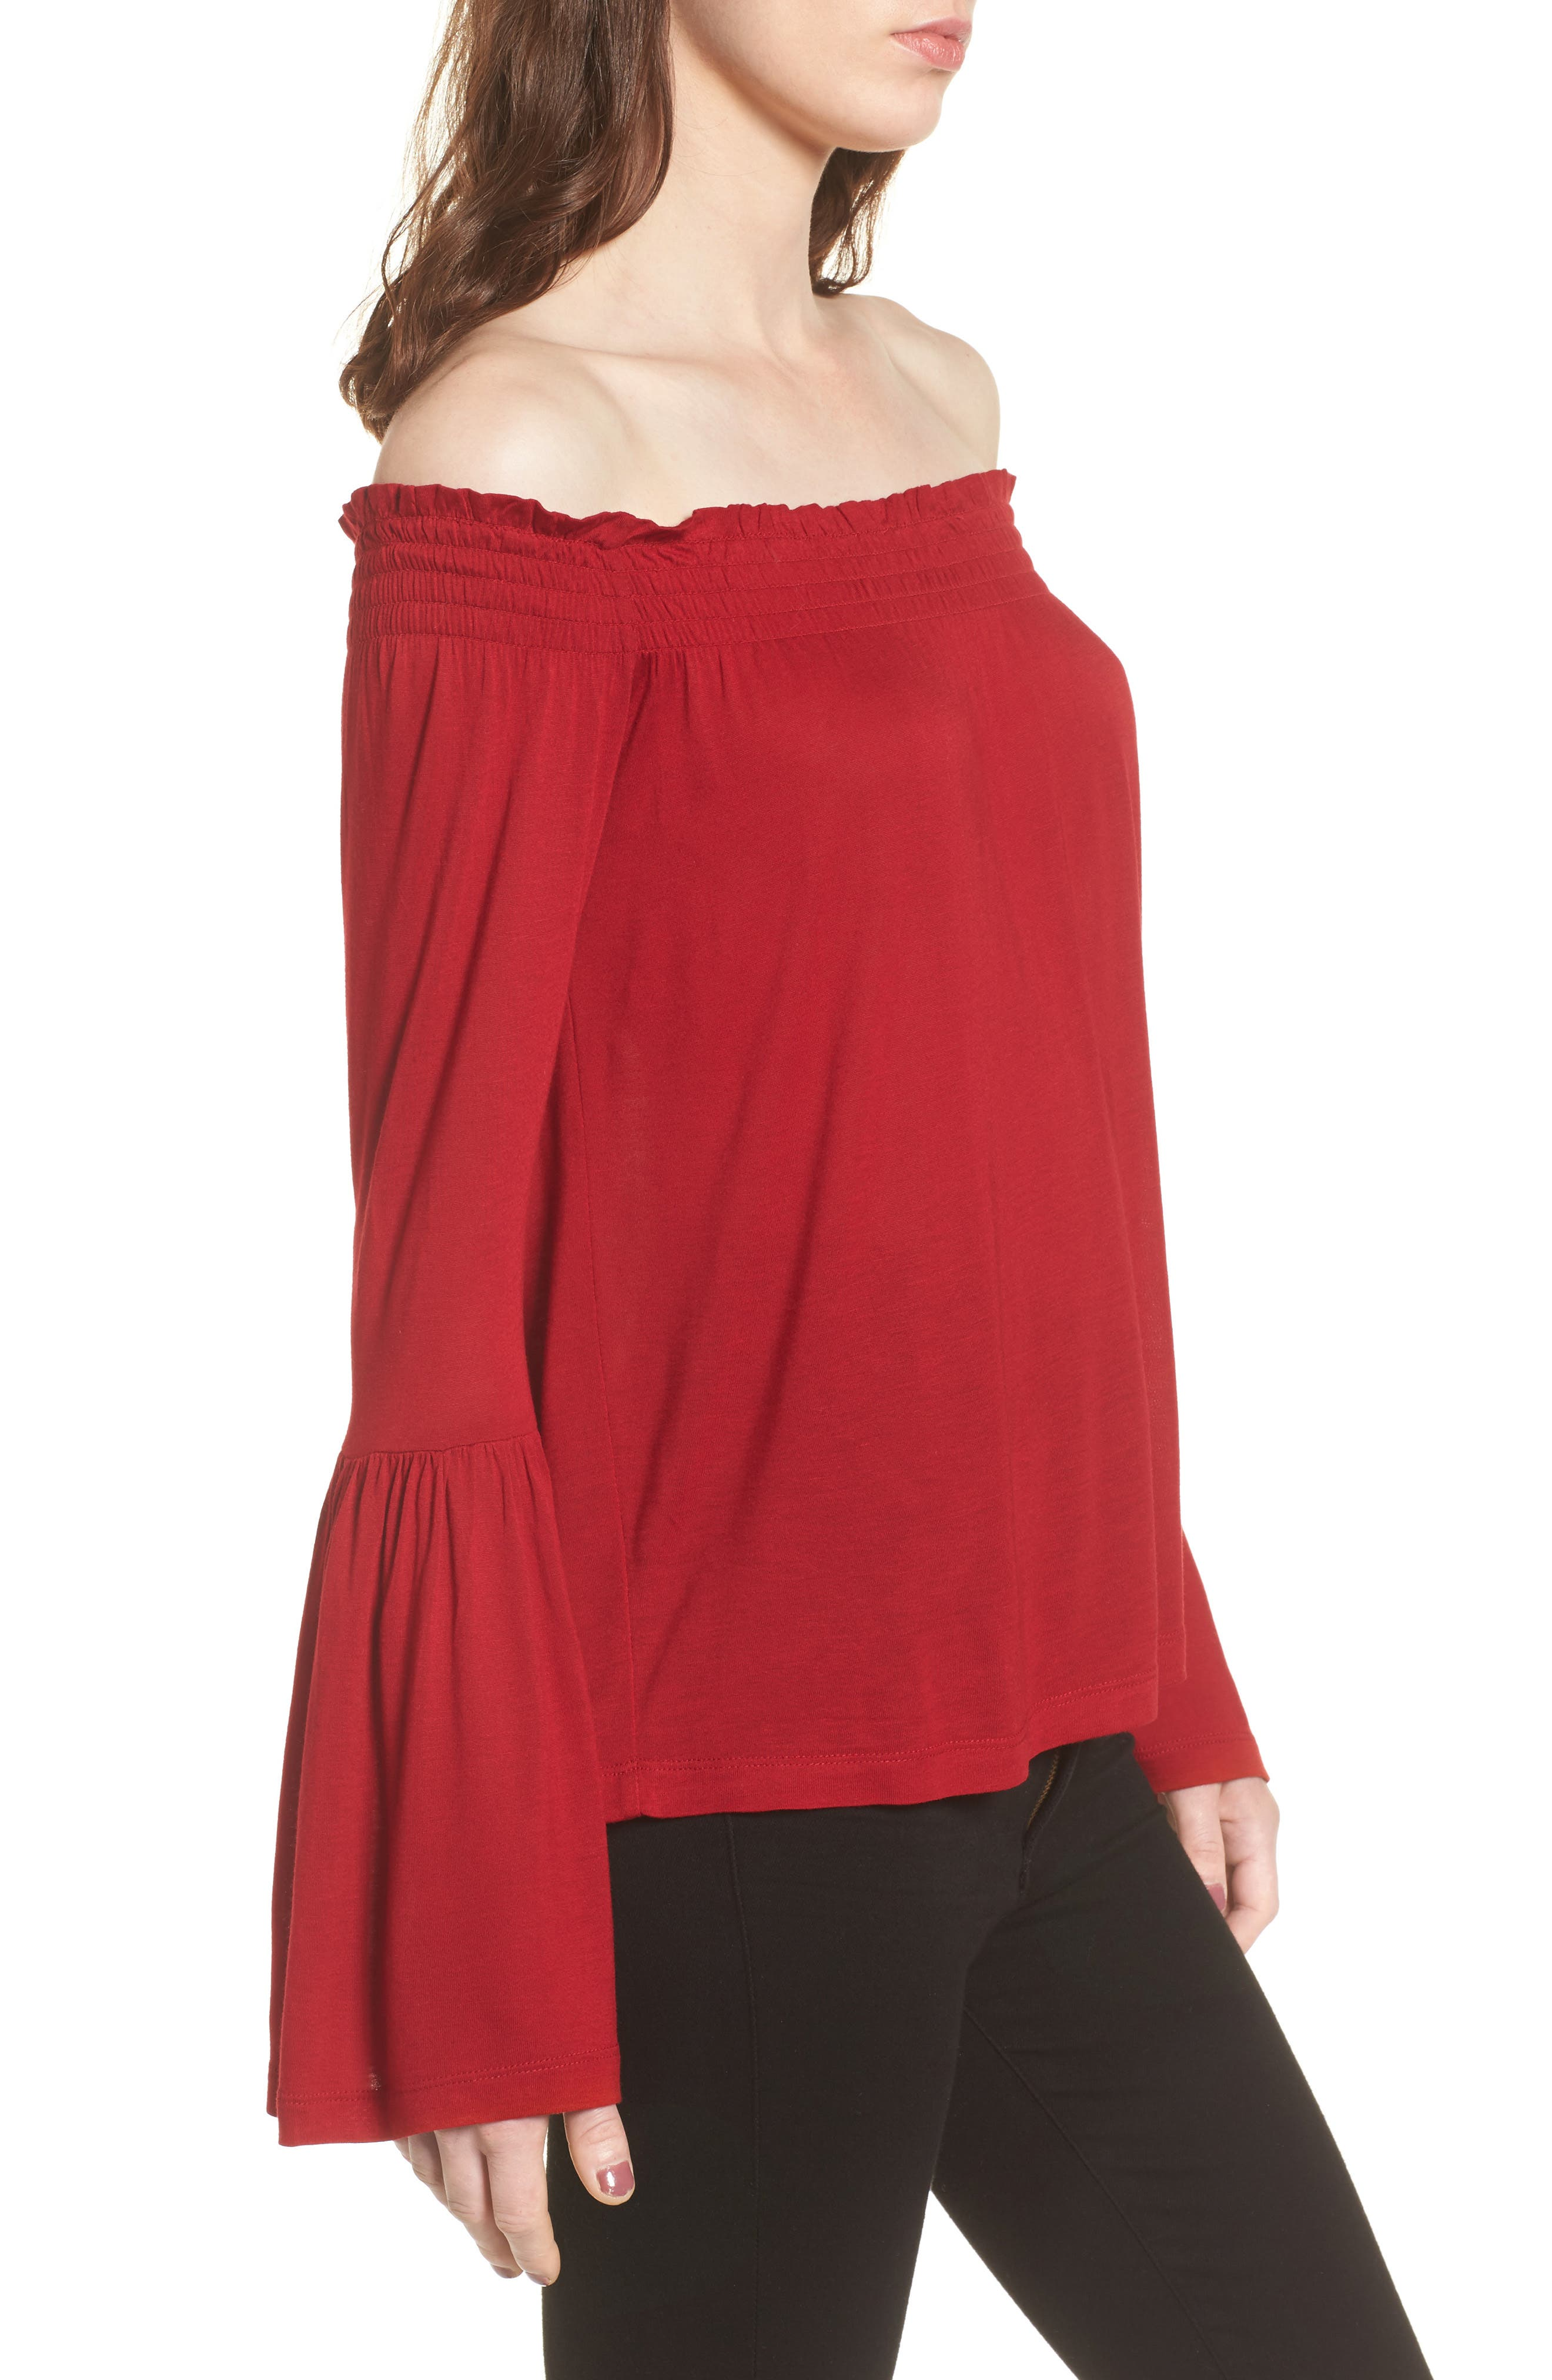 Luck Off the Shoulder Top,                             Alternate thumbnail 3, color,                             643